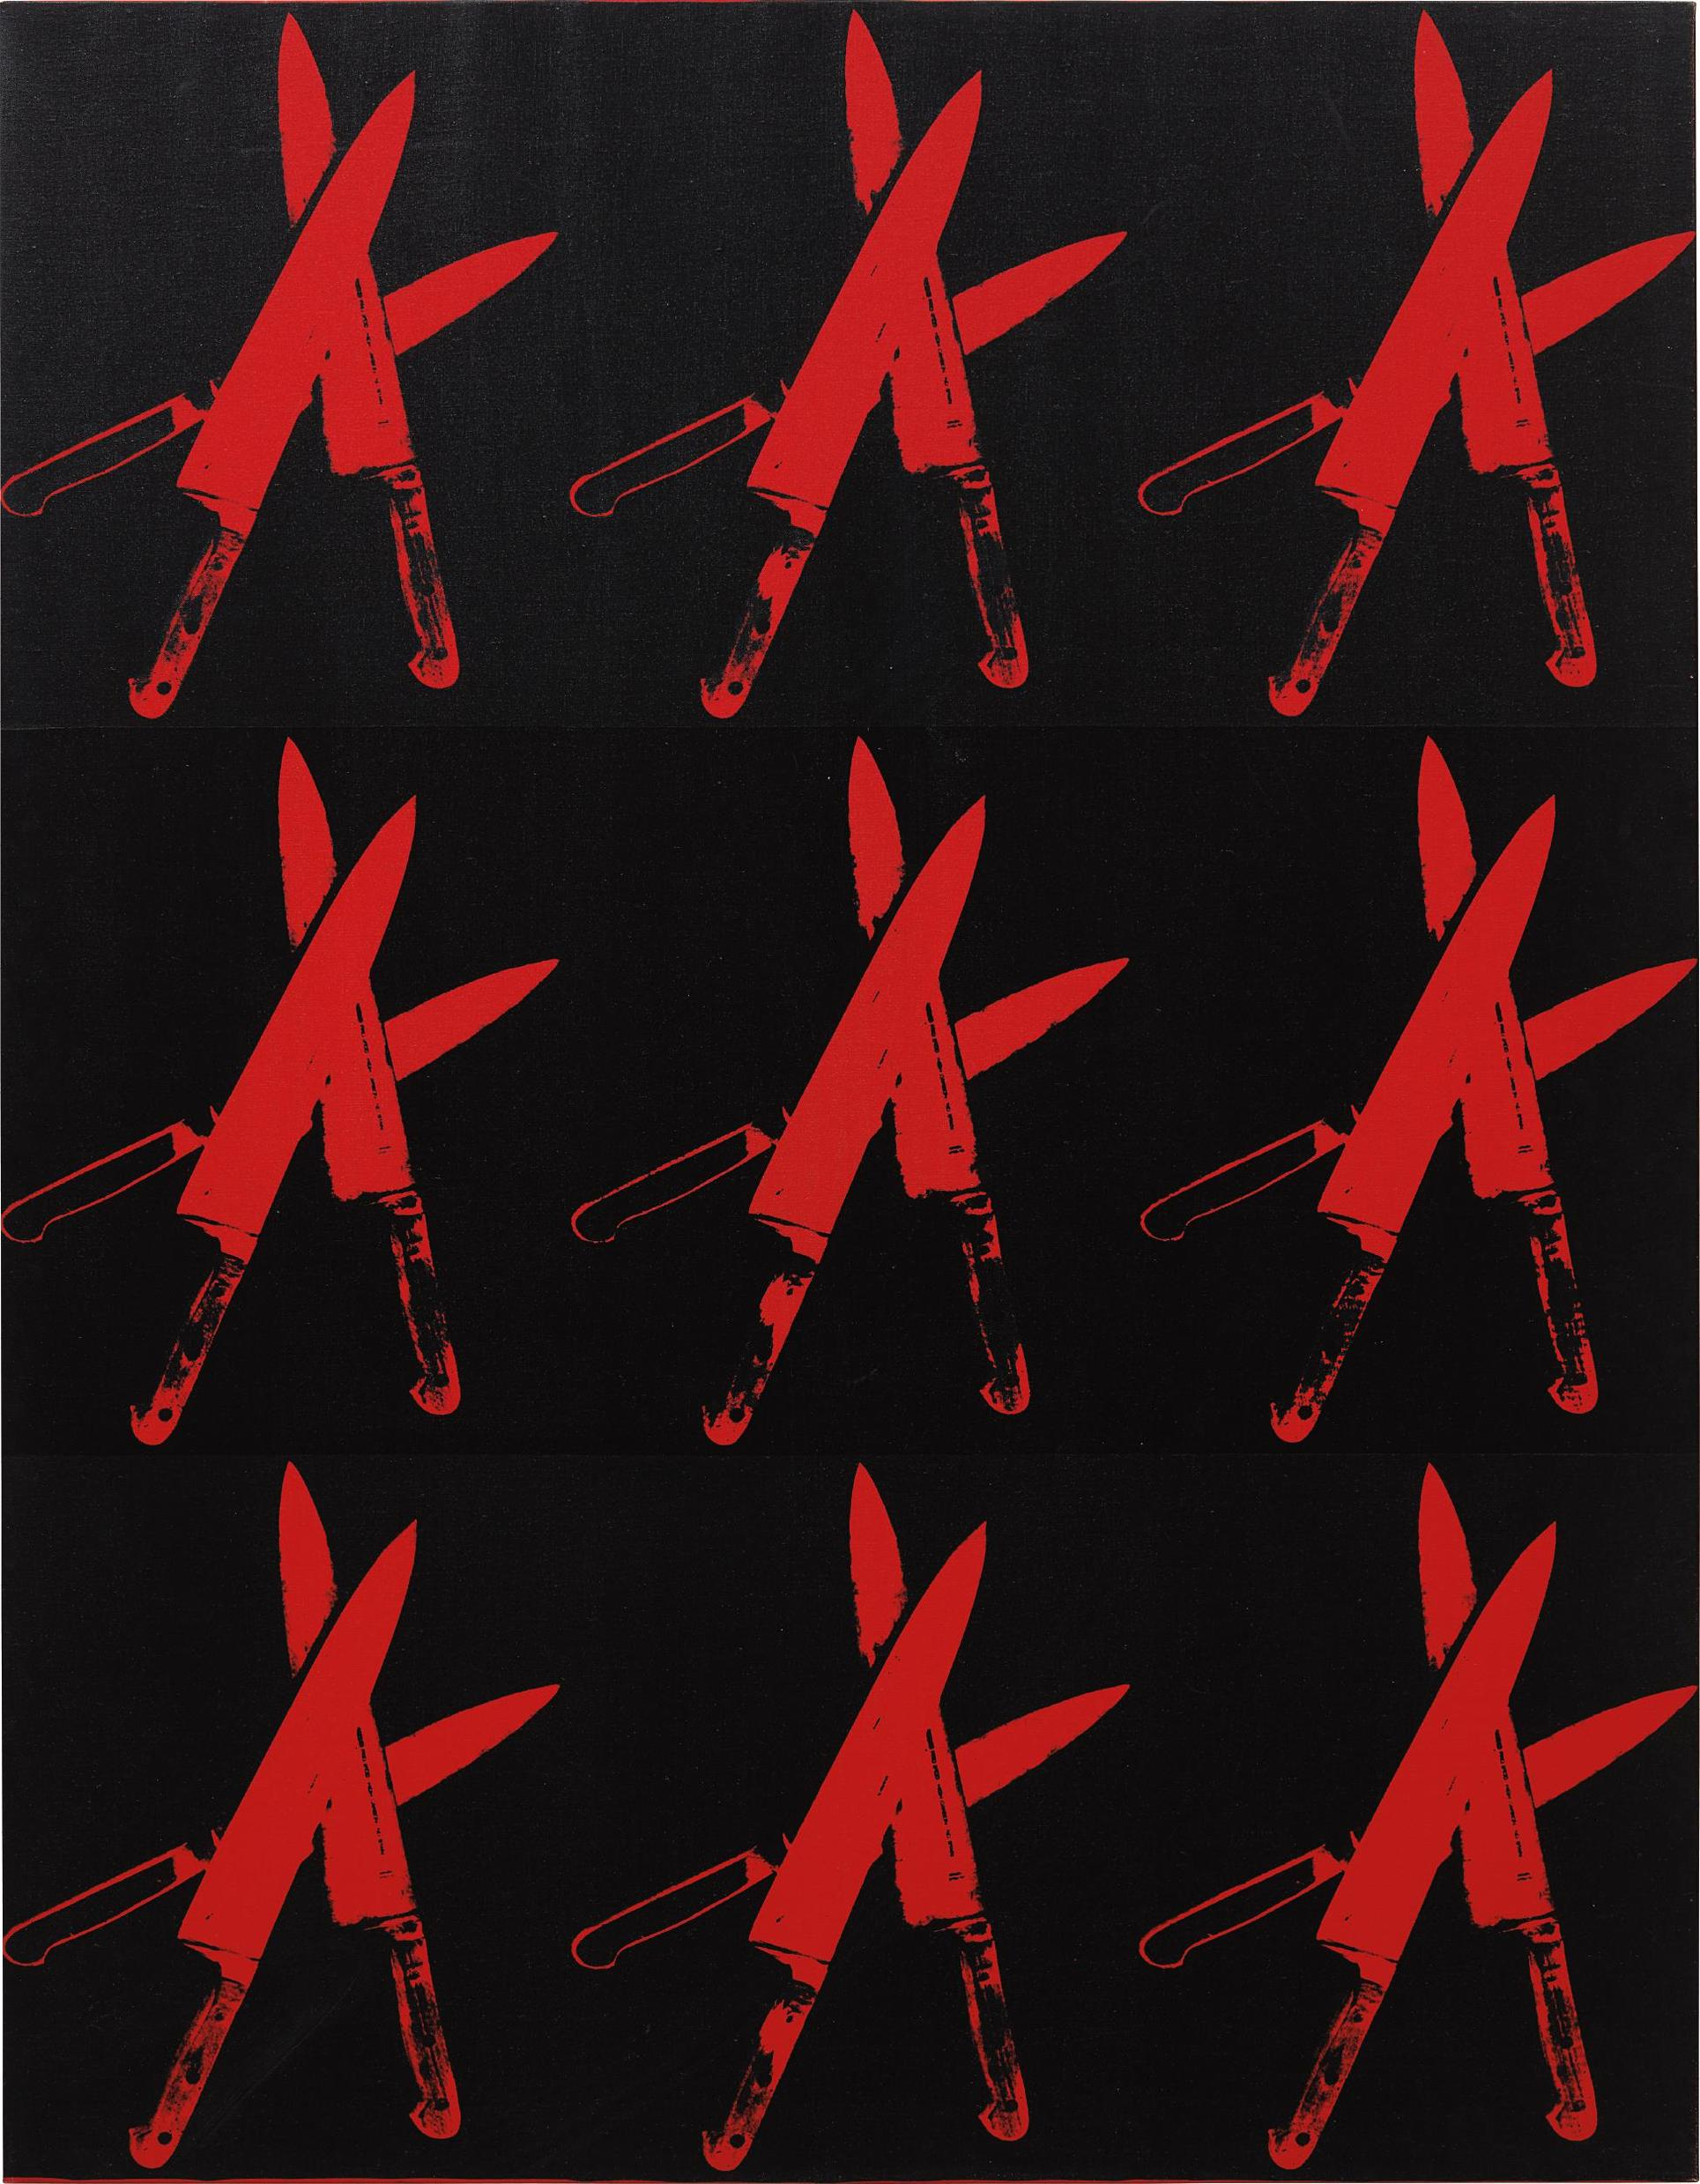 Andy Warhol-Knives-1982